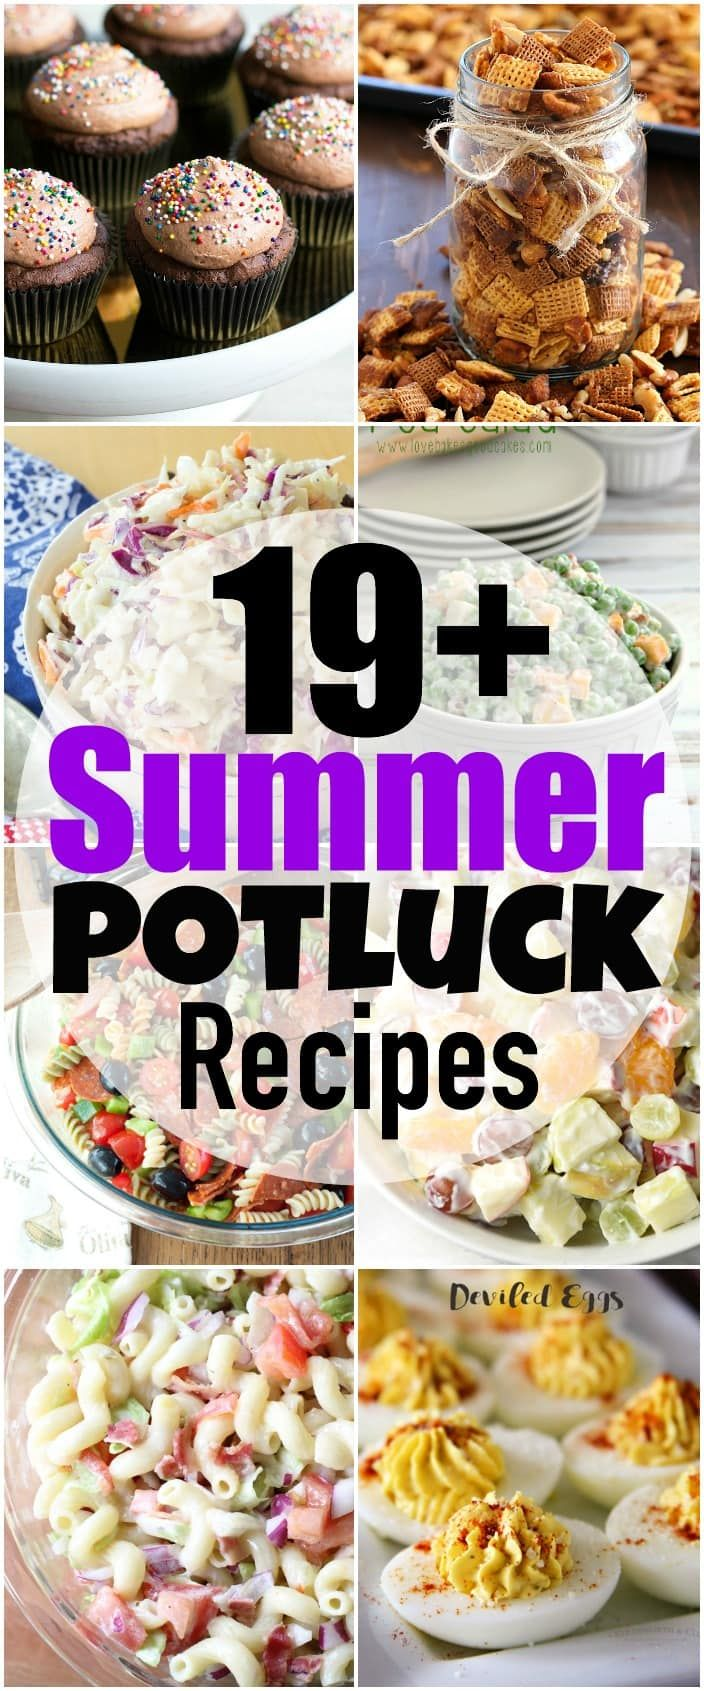 25 best ideas about meals for large groups on pinterest for Picnic food ideas for large groups